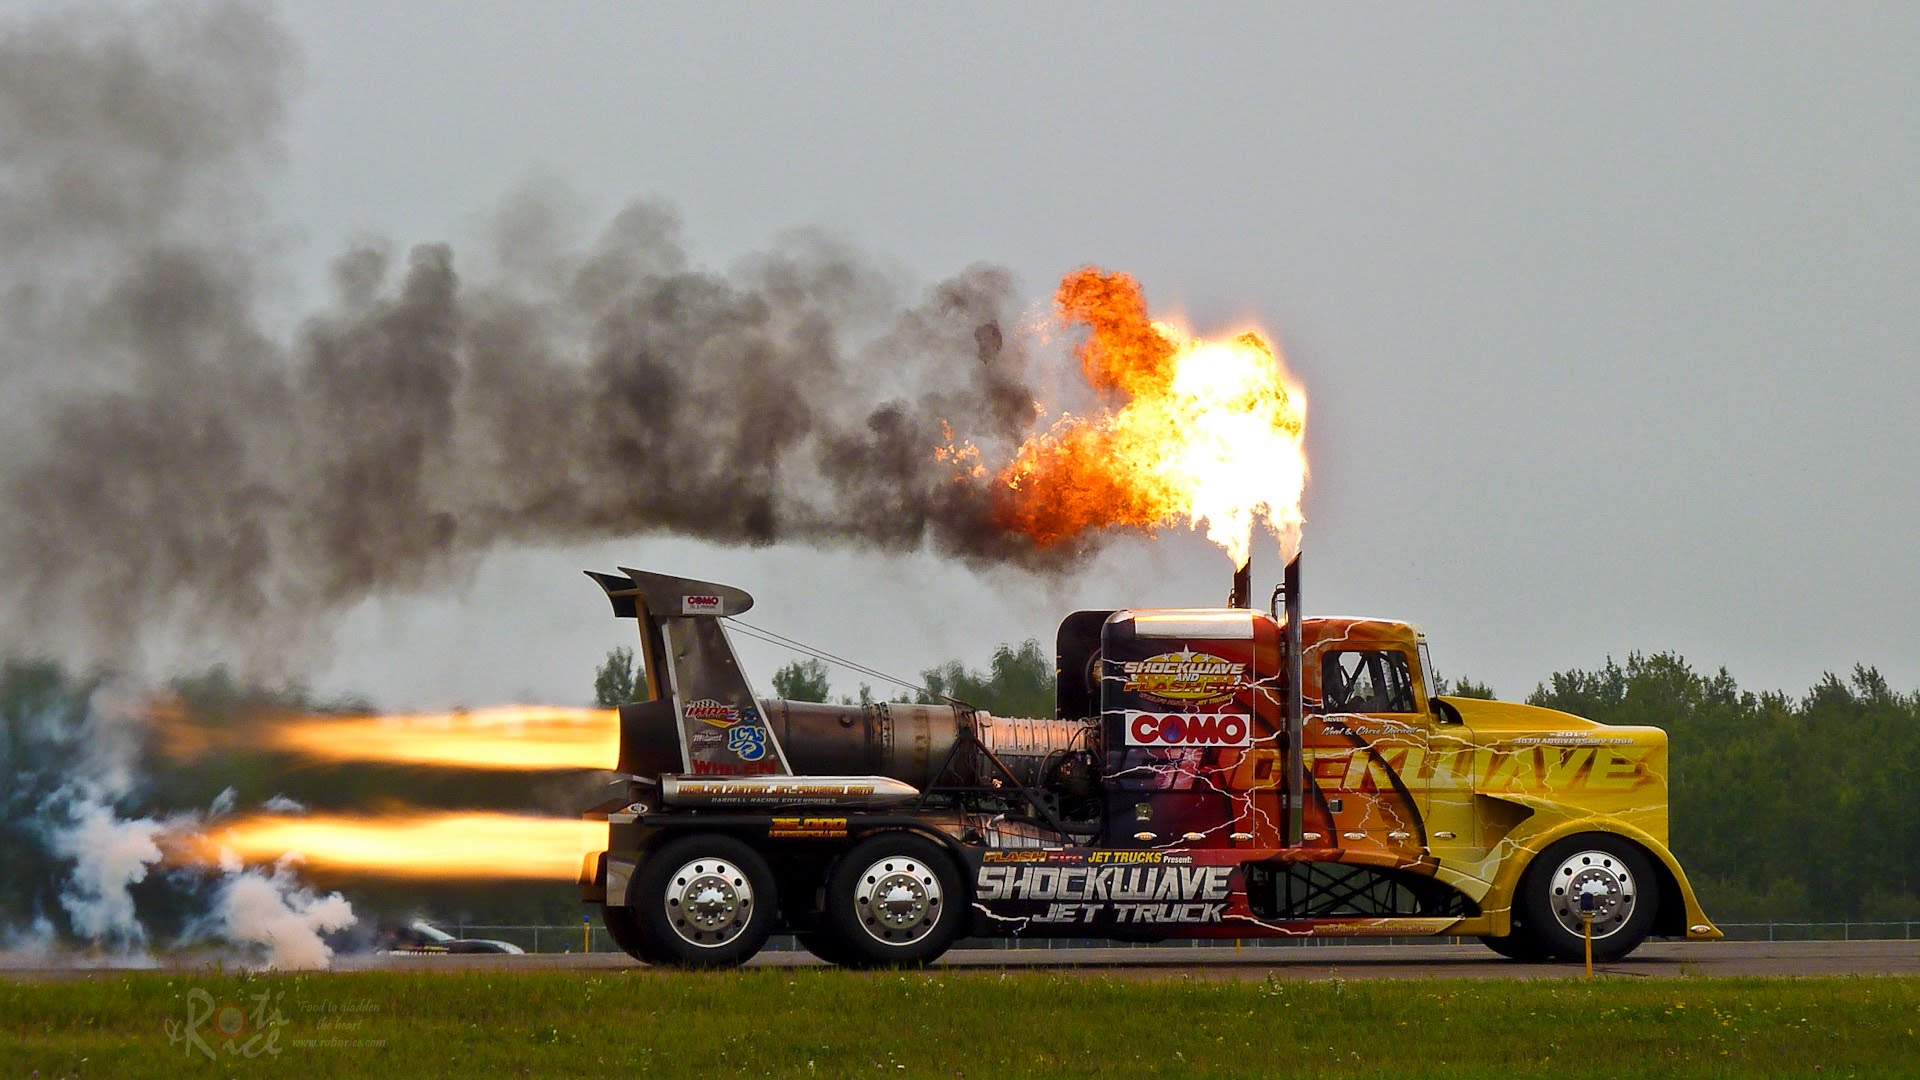 Shockwave is World's Fastest Truck, Powered by Three Jet Engines That Generate 36,000HP